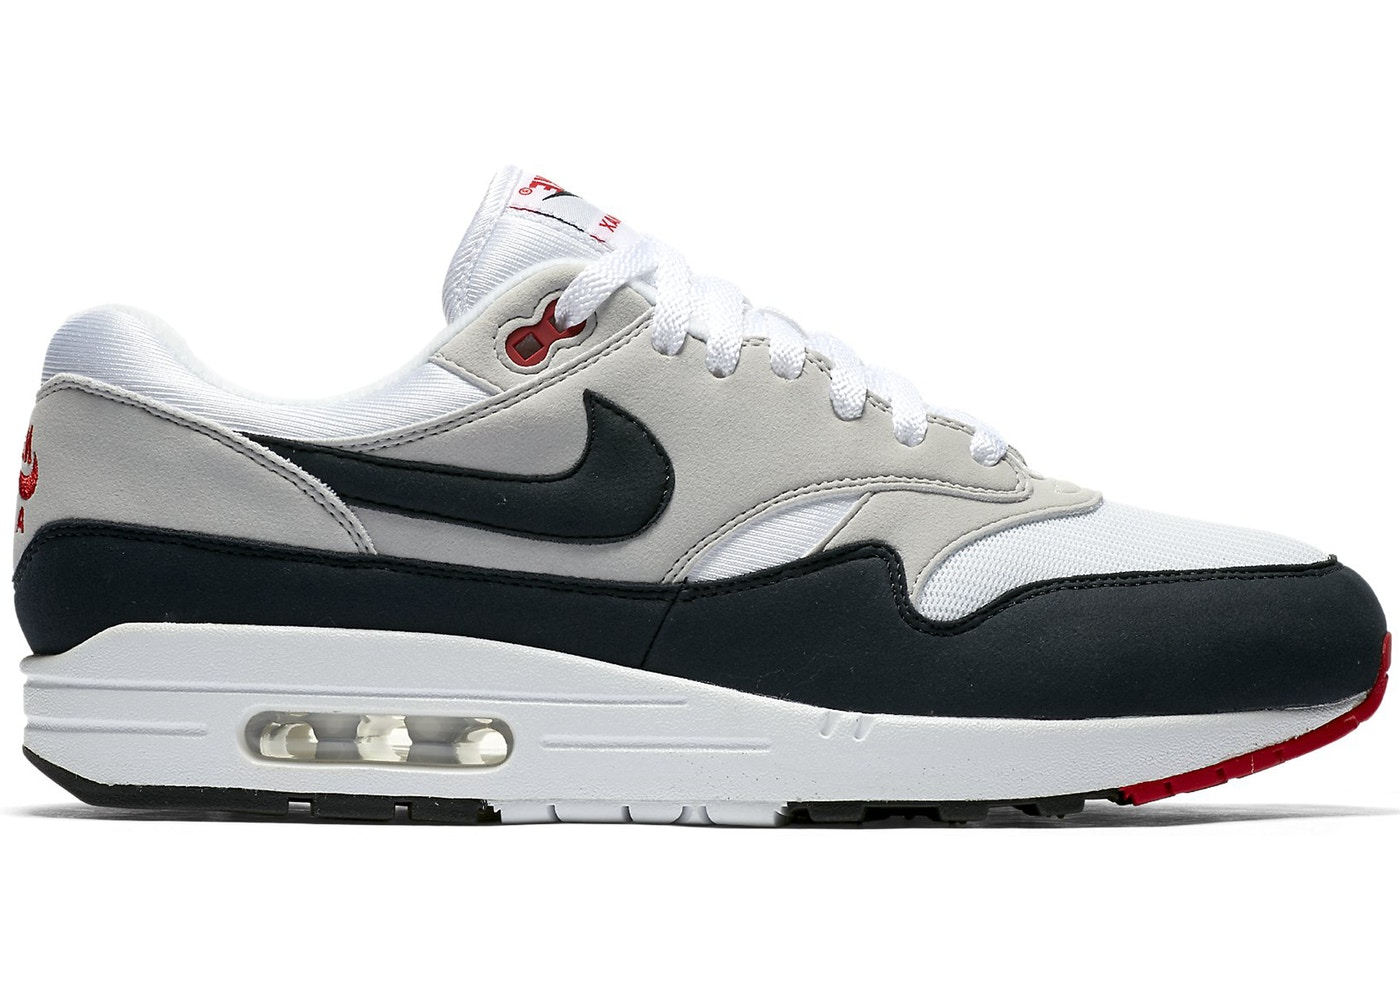 new arrival 4e7b8 9be59 Air Max 1 Anniversary Obsidian - 908375-104